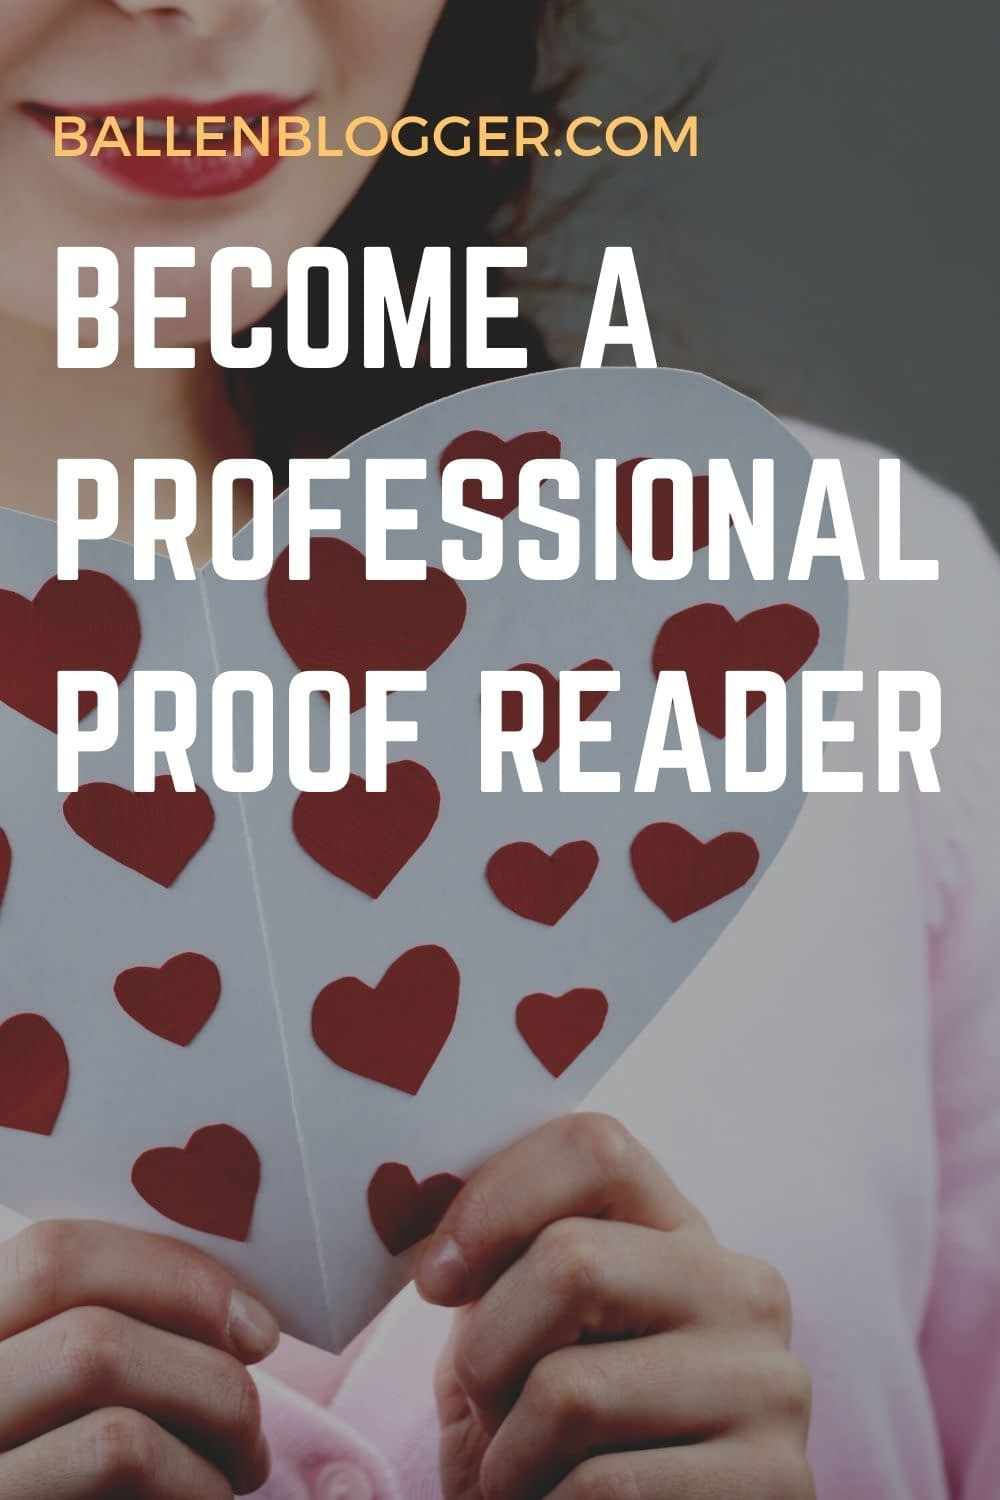 If you want to become a professional proofreader, you can take the course Proofread Anywhere. In this article, we review the Proofread Anywhere course.